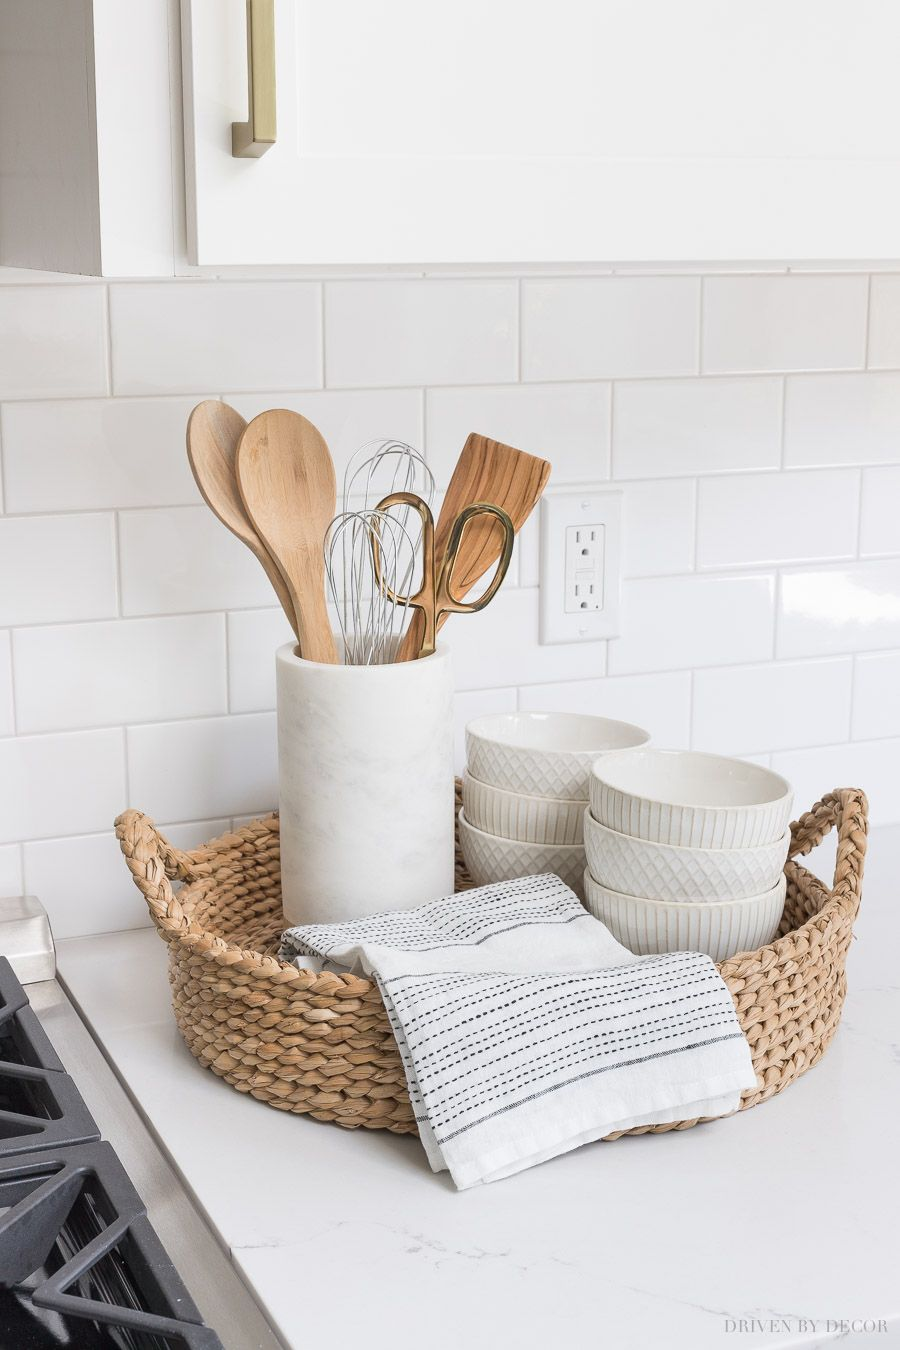 The Perfect Set Up For Next To Your Range A Round Woven Tray Holds Most Used Utensils In A Pretty M Woven Trays White Kitchen Remodeling Kitchen Counter Decor